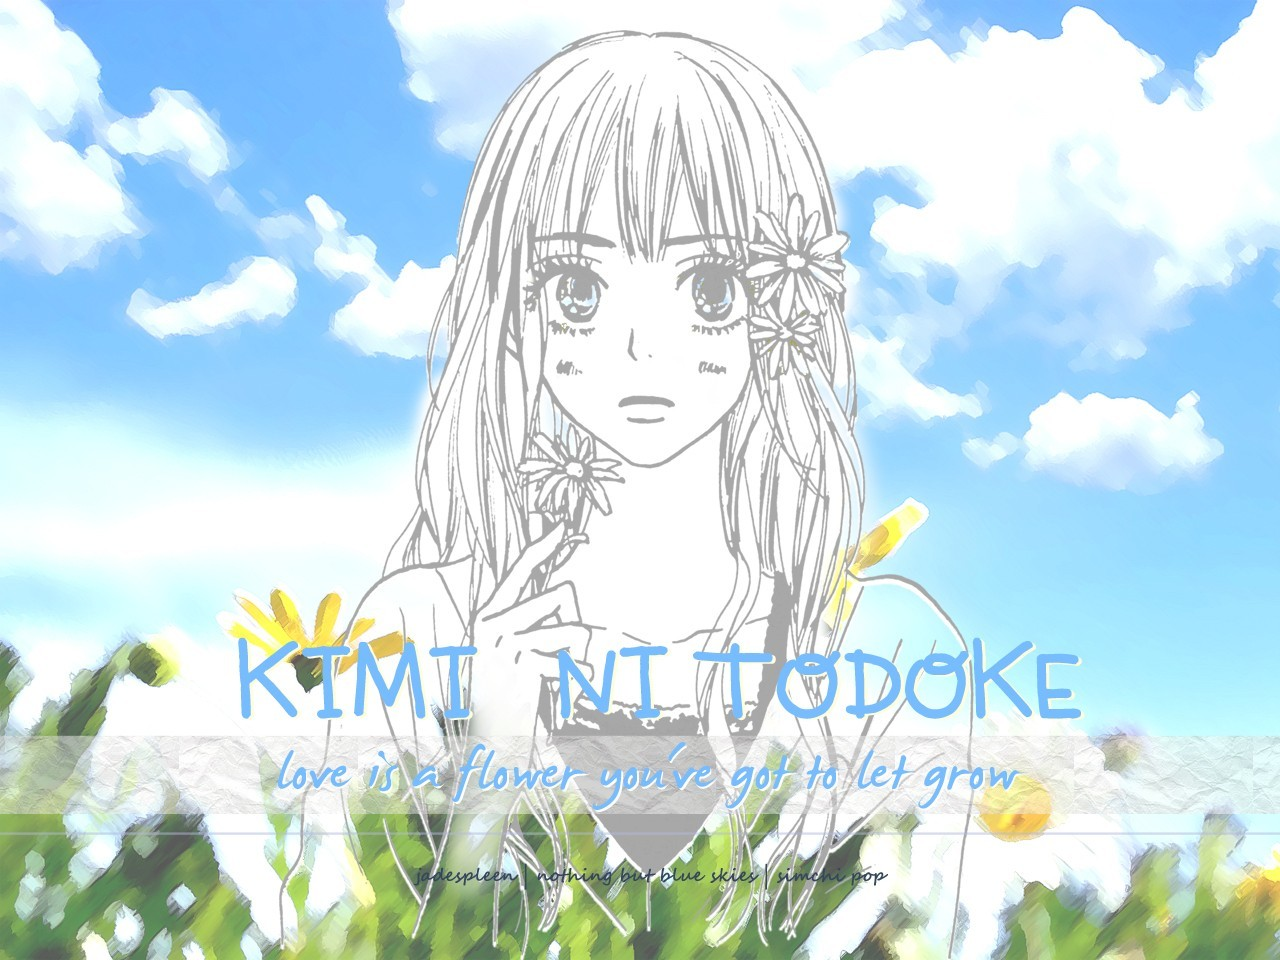 Kimi ni todoke Anime HD Wallpaper